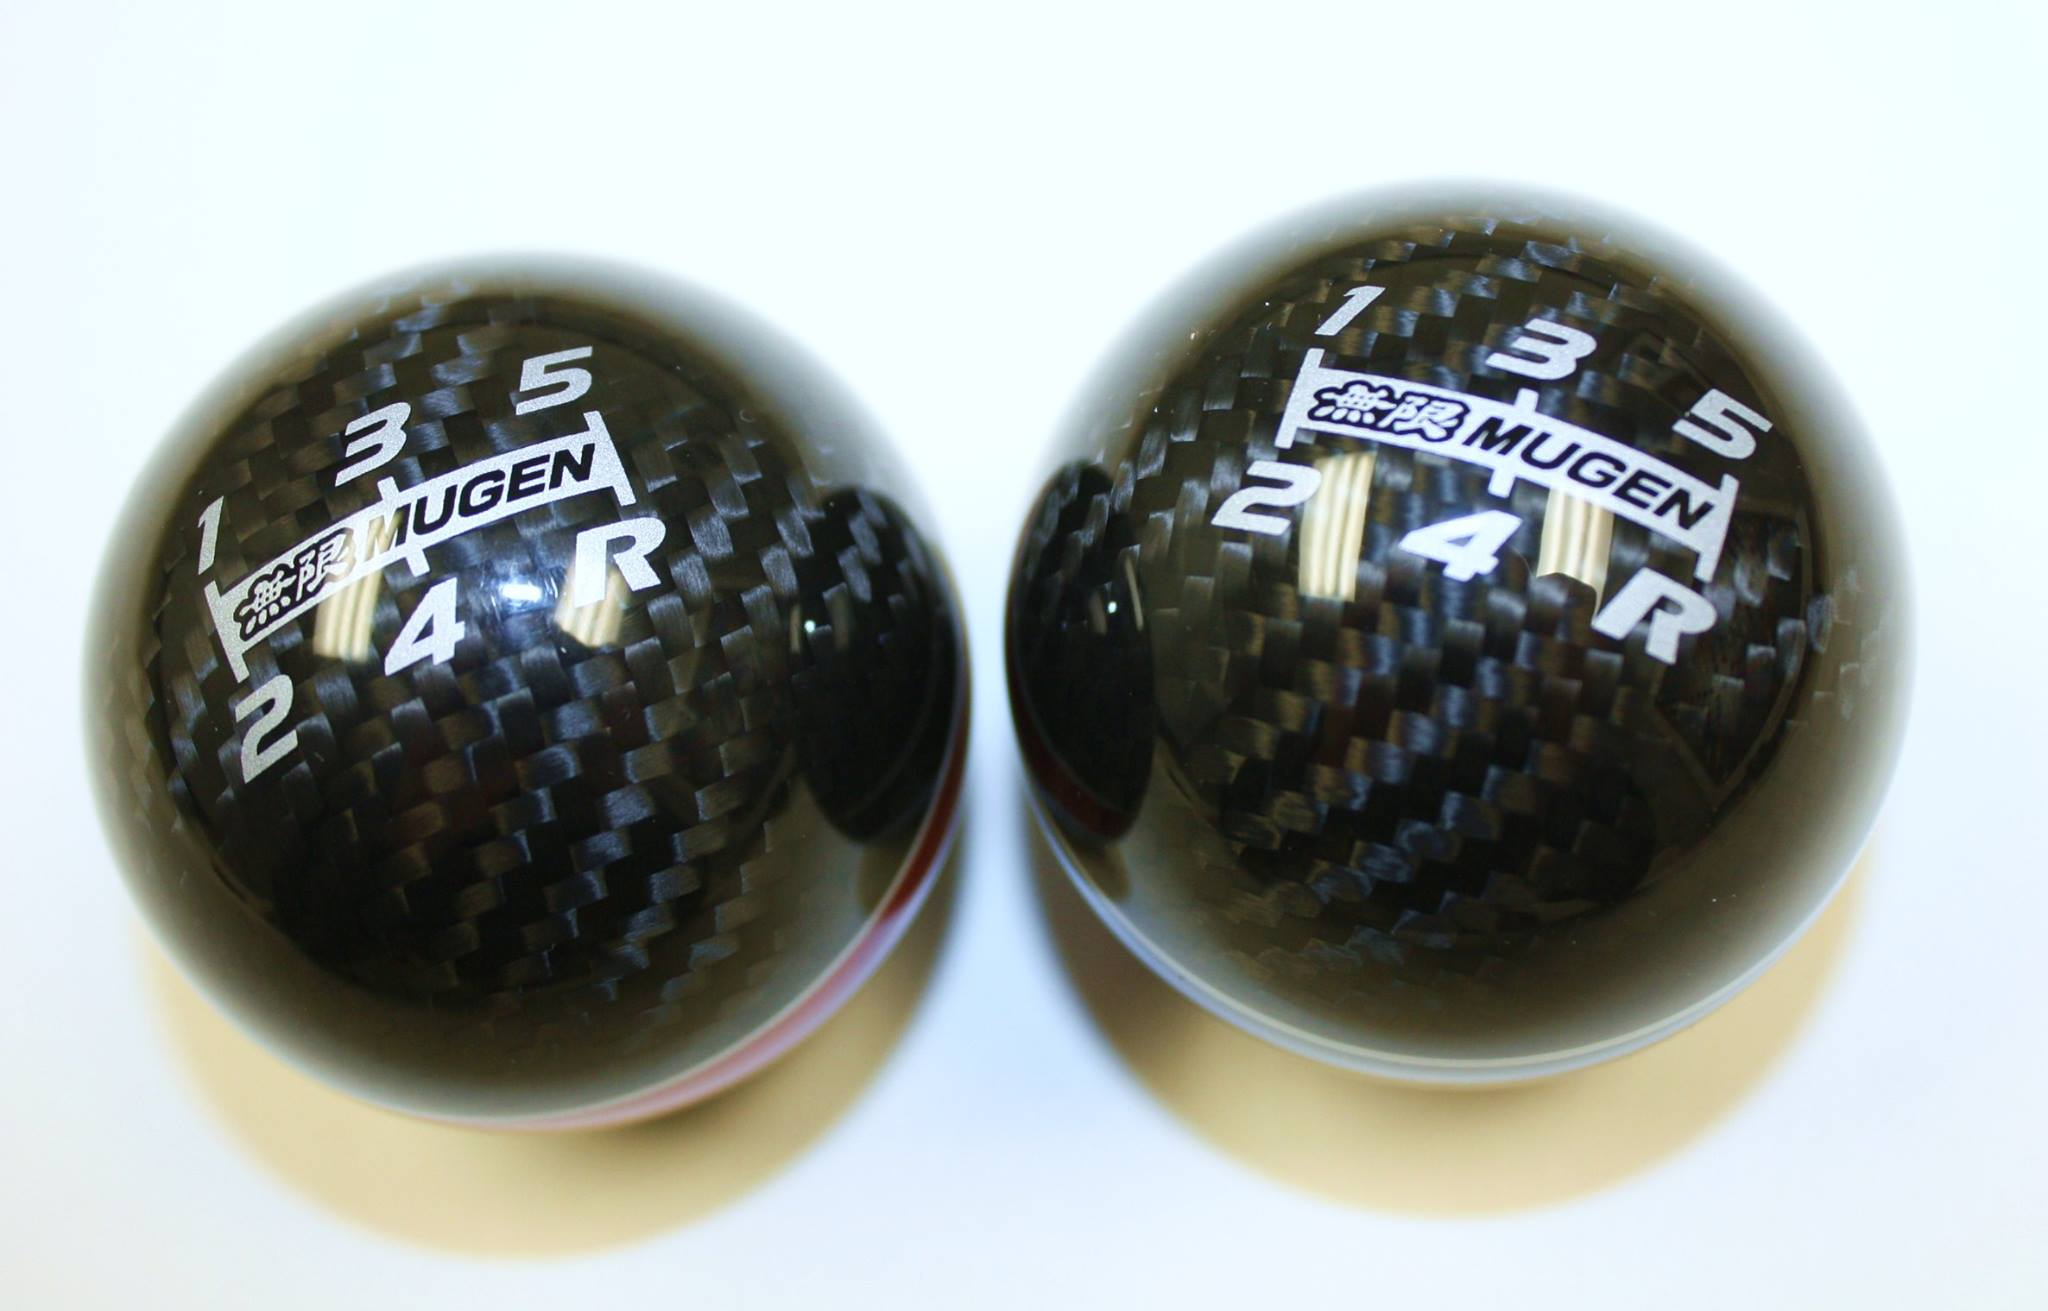 MUGEN Carbon Fiber Spherical Shift Knob 5 Speed